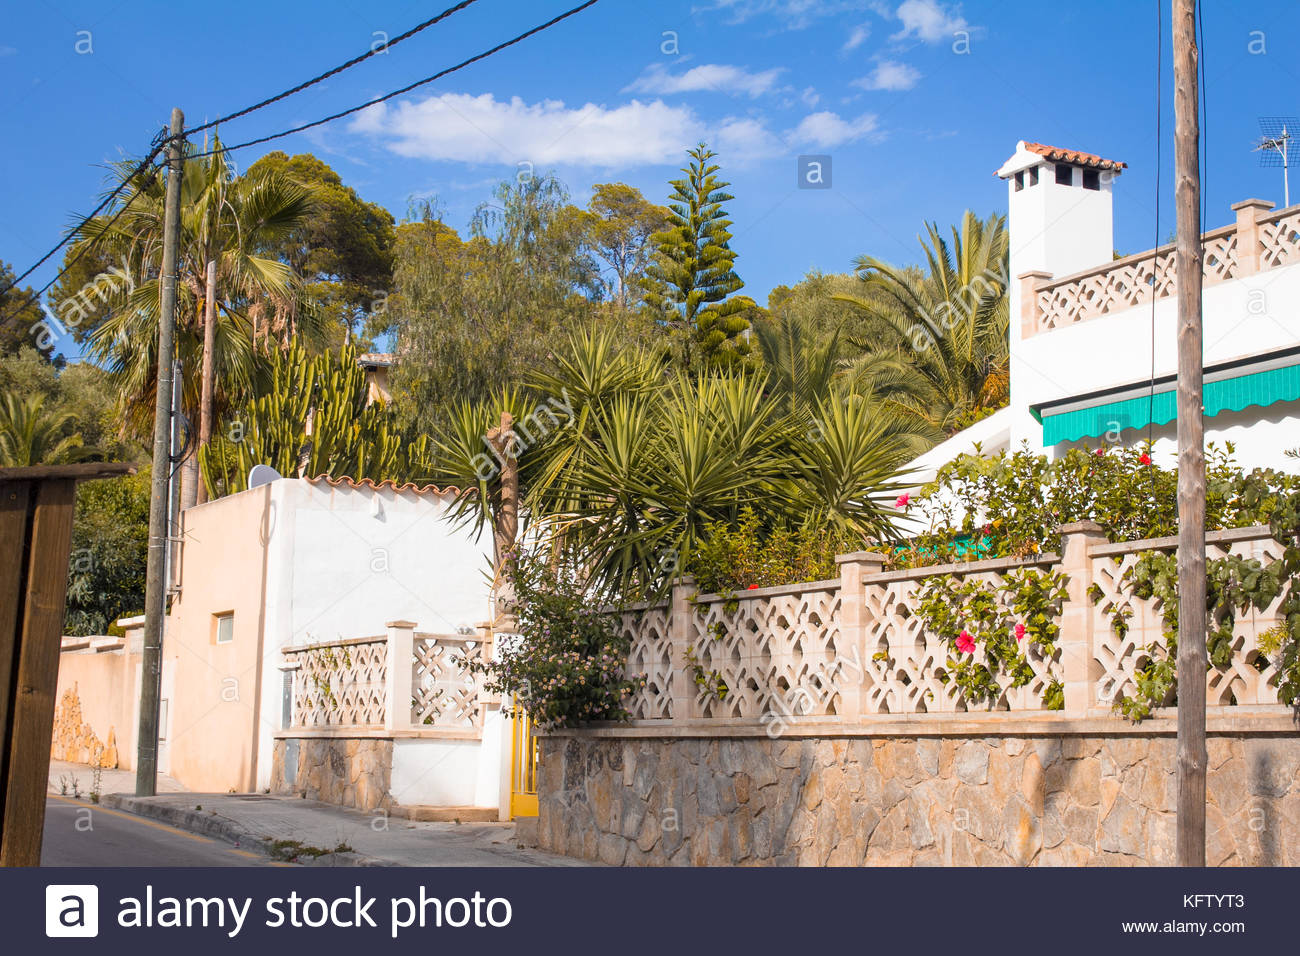 Fence Palm Stock Photos Amp Fence Palm Stock Images Alamy